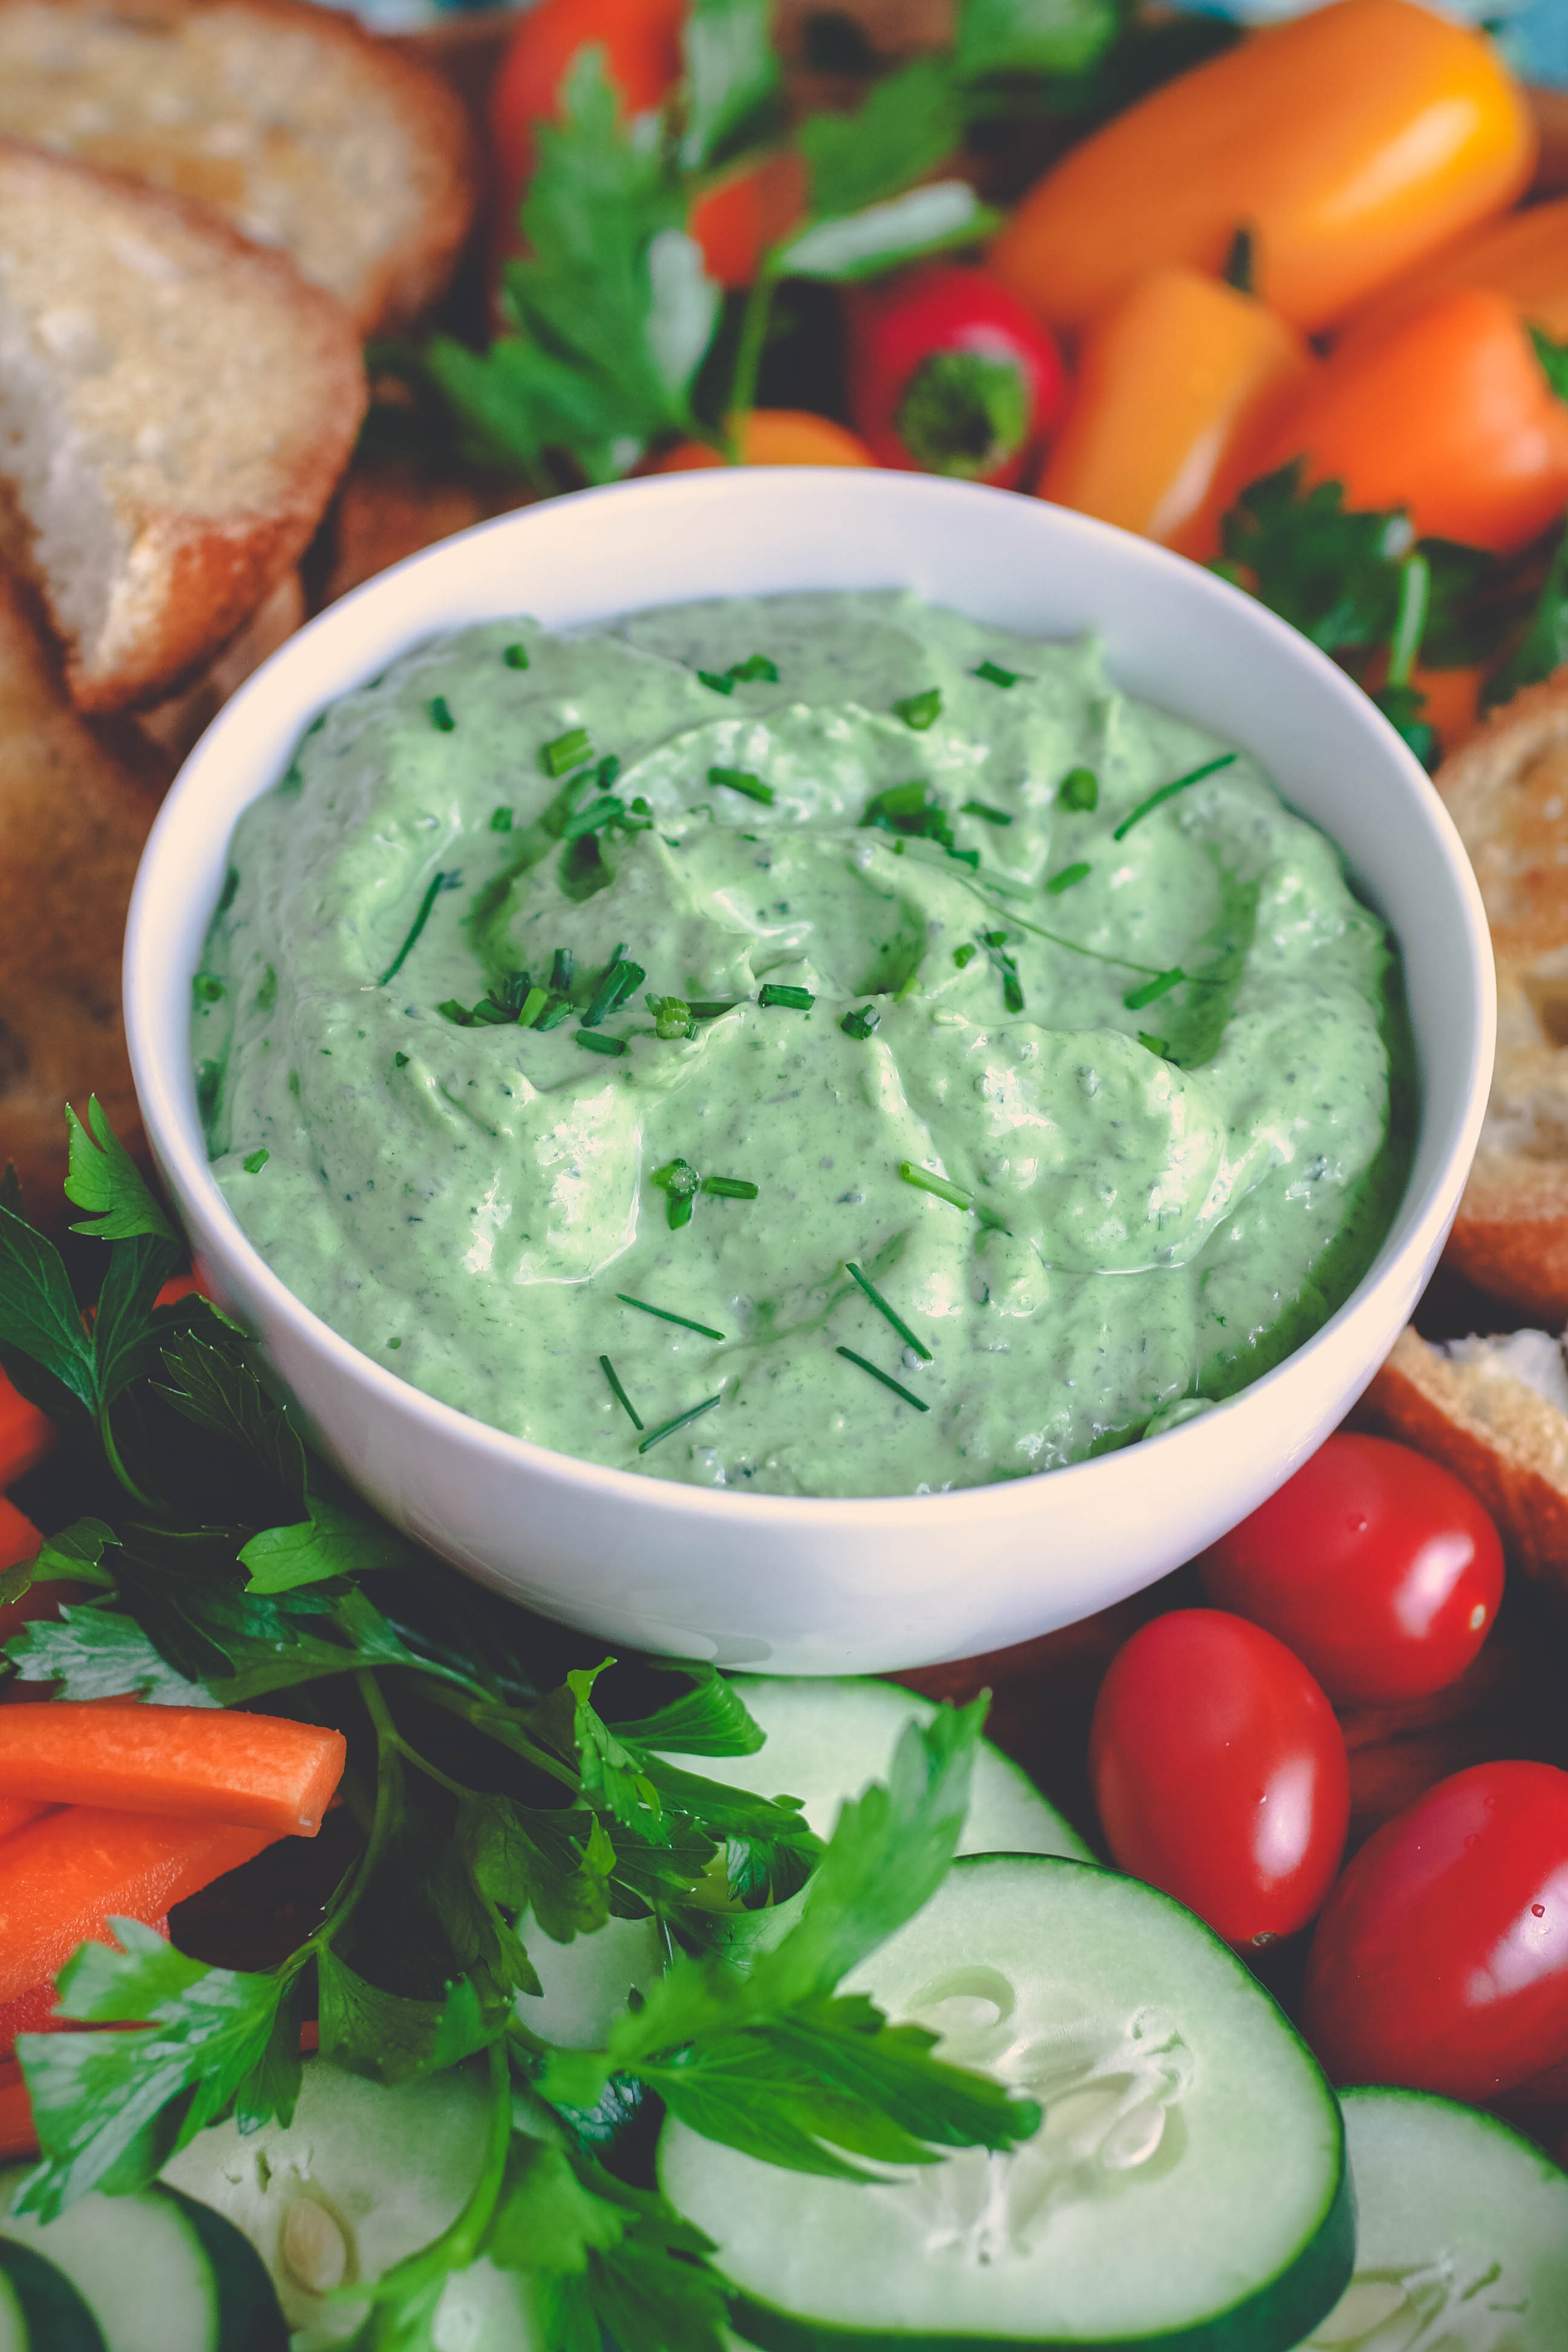 Creamy Green Goddess Dip is filled with great ingredients for a tasty snack. Creamy Green Goddess Dip is so nice to serve as a snack or appetizer!